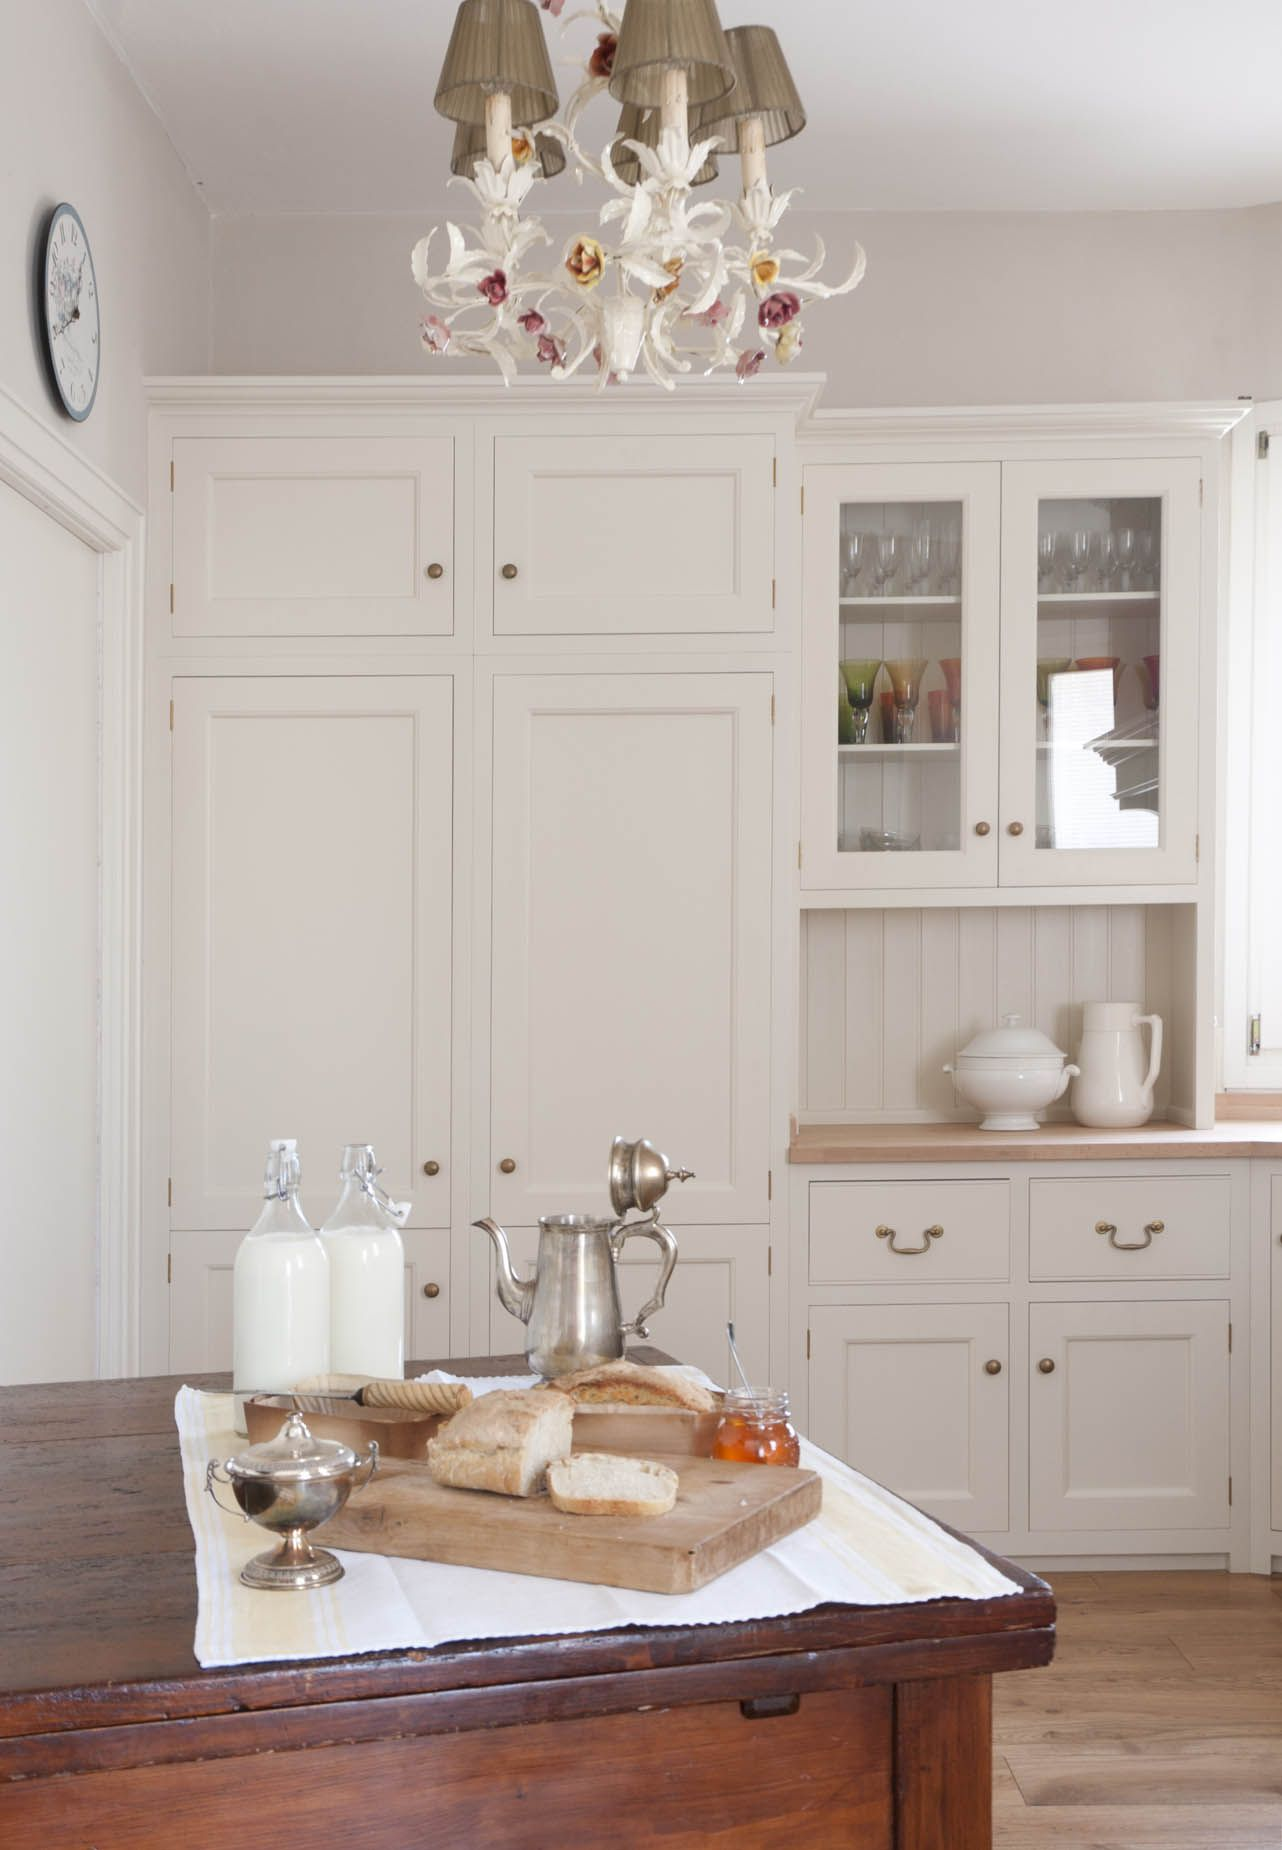 Monticello kitchen by homewood bespoke la classica cucina - Cucine in stile ...